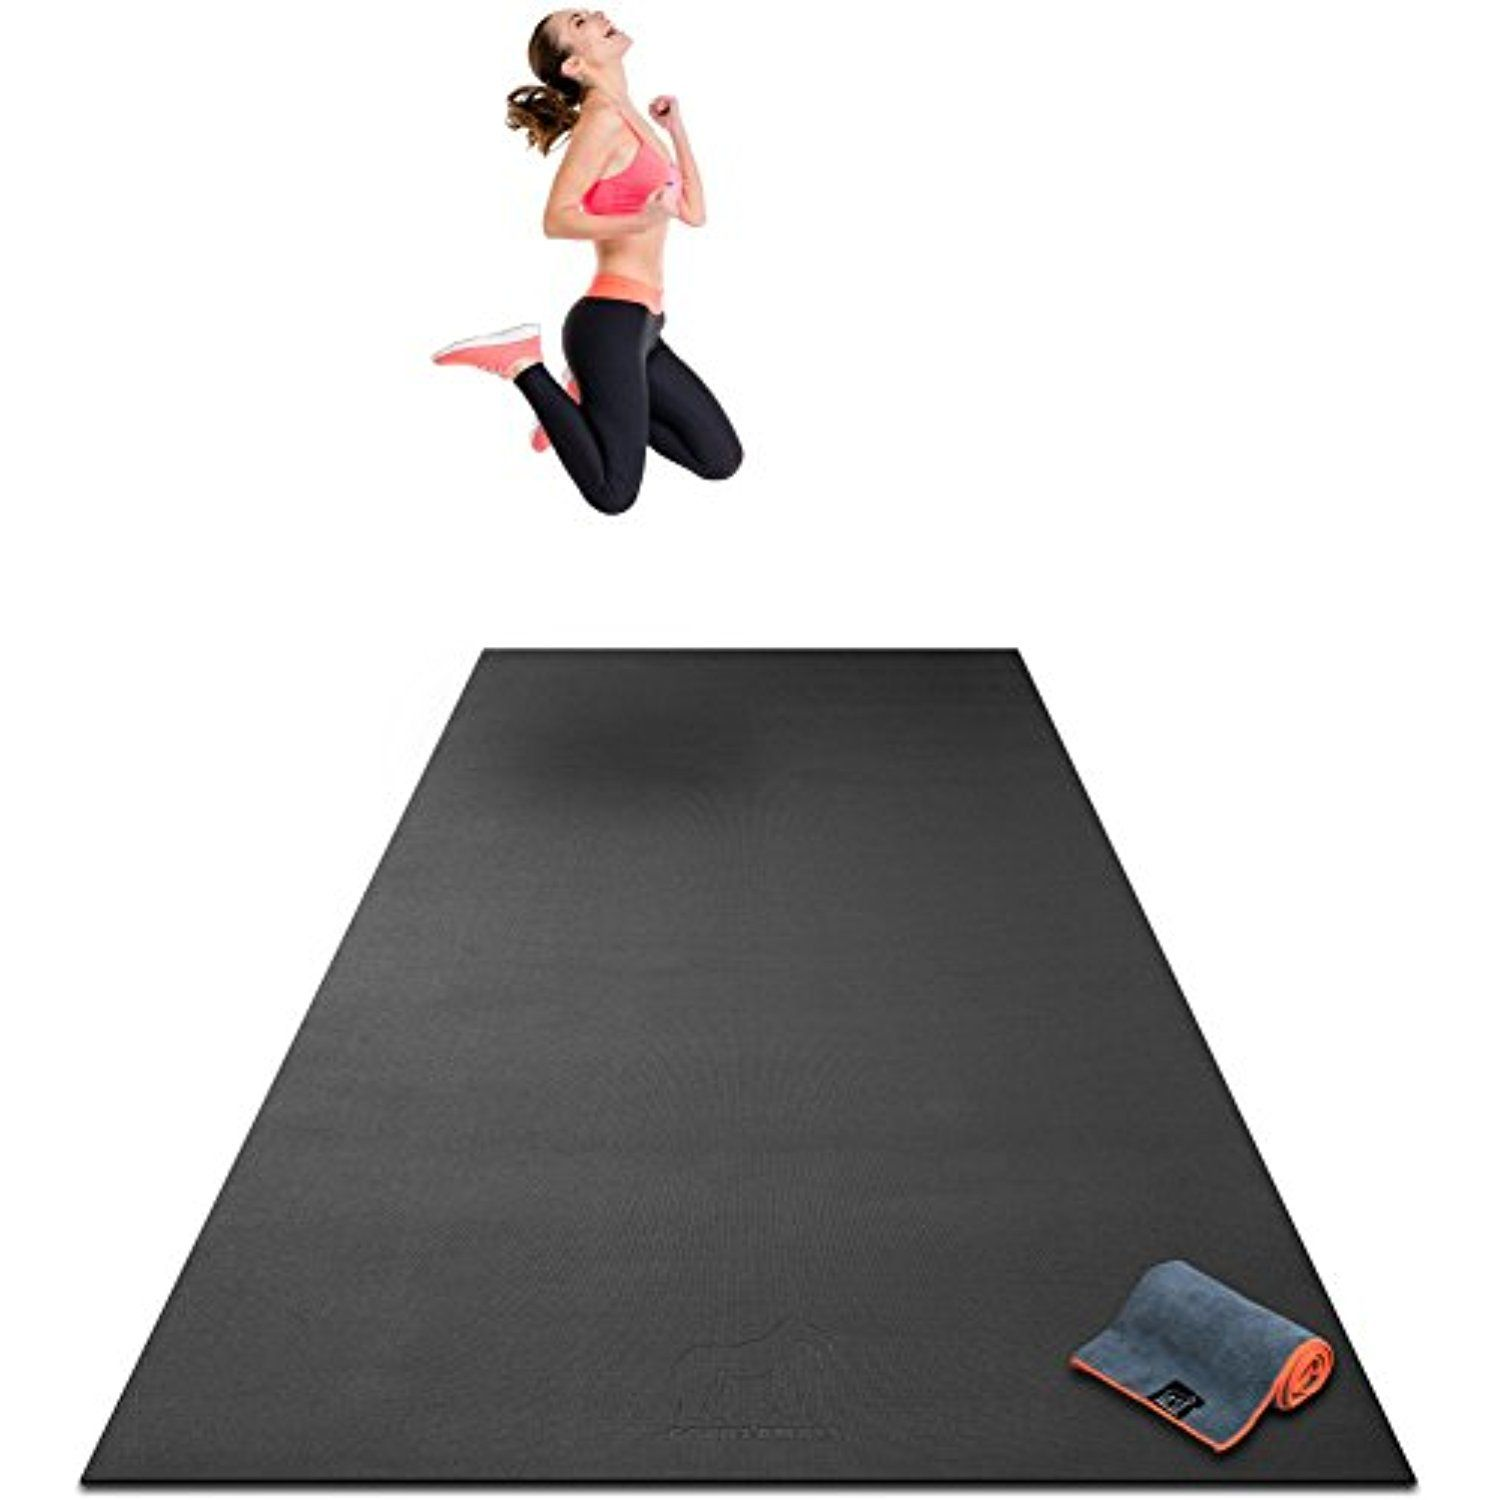 Premium Extra Large Exercise Mat 10 X 4 X 1 4 Ultra Durable Non Slip Workout Mats For Home Gym Flooring P Large Workout Mat Mat Exercises Gym Flooring